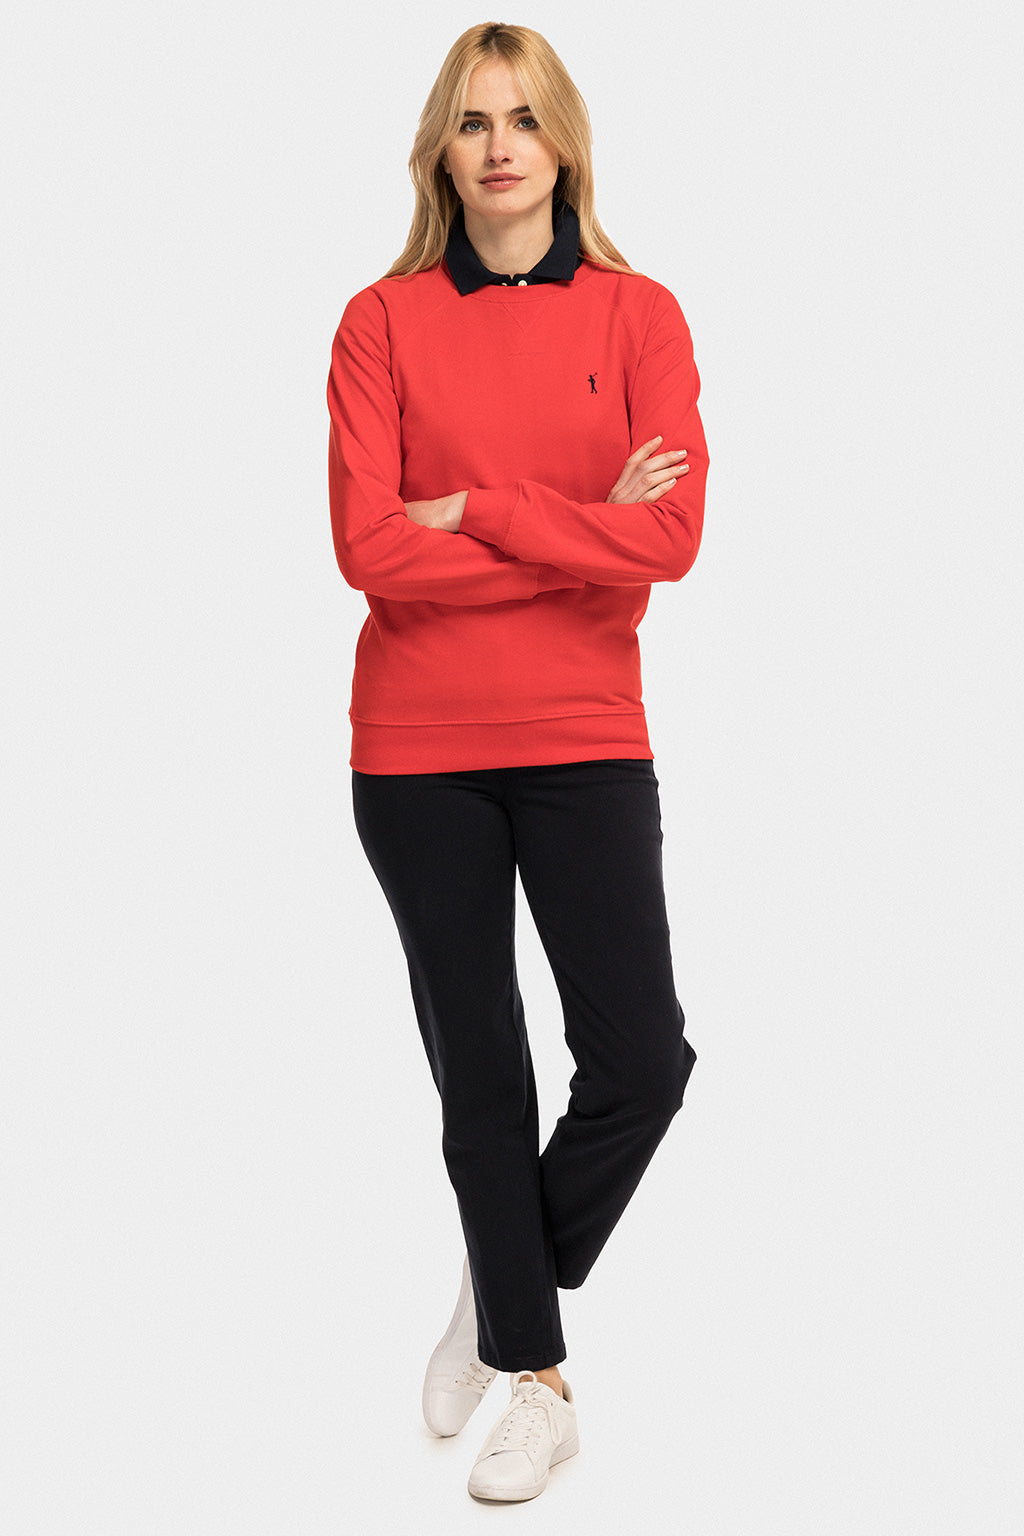 Red round neck sweatshirt